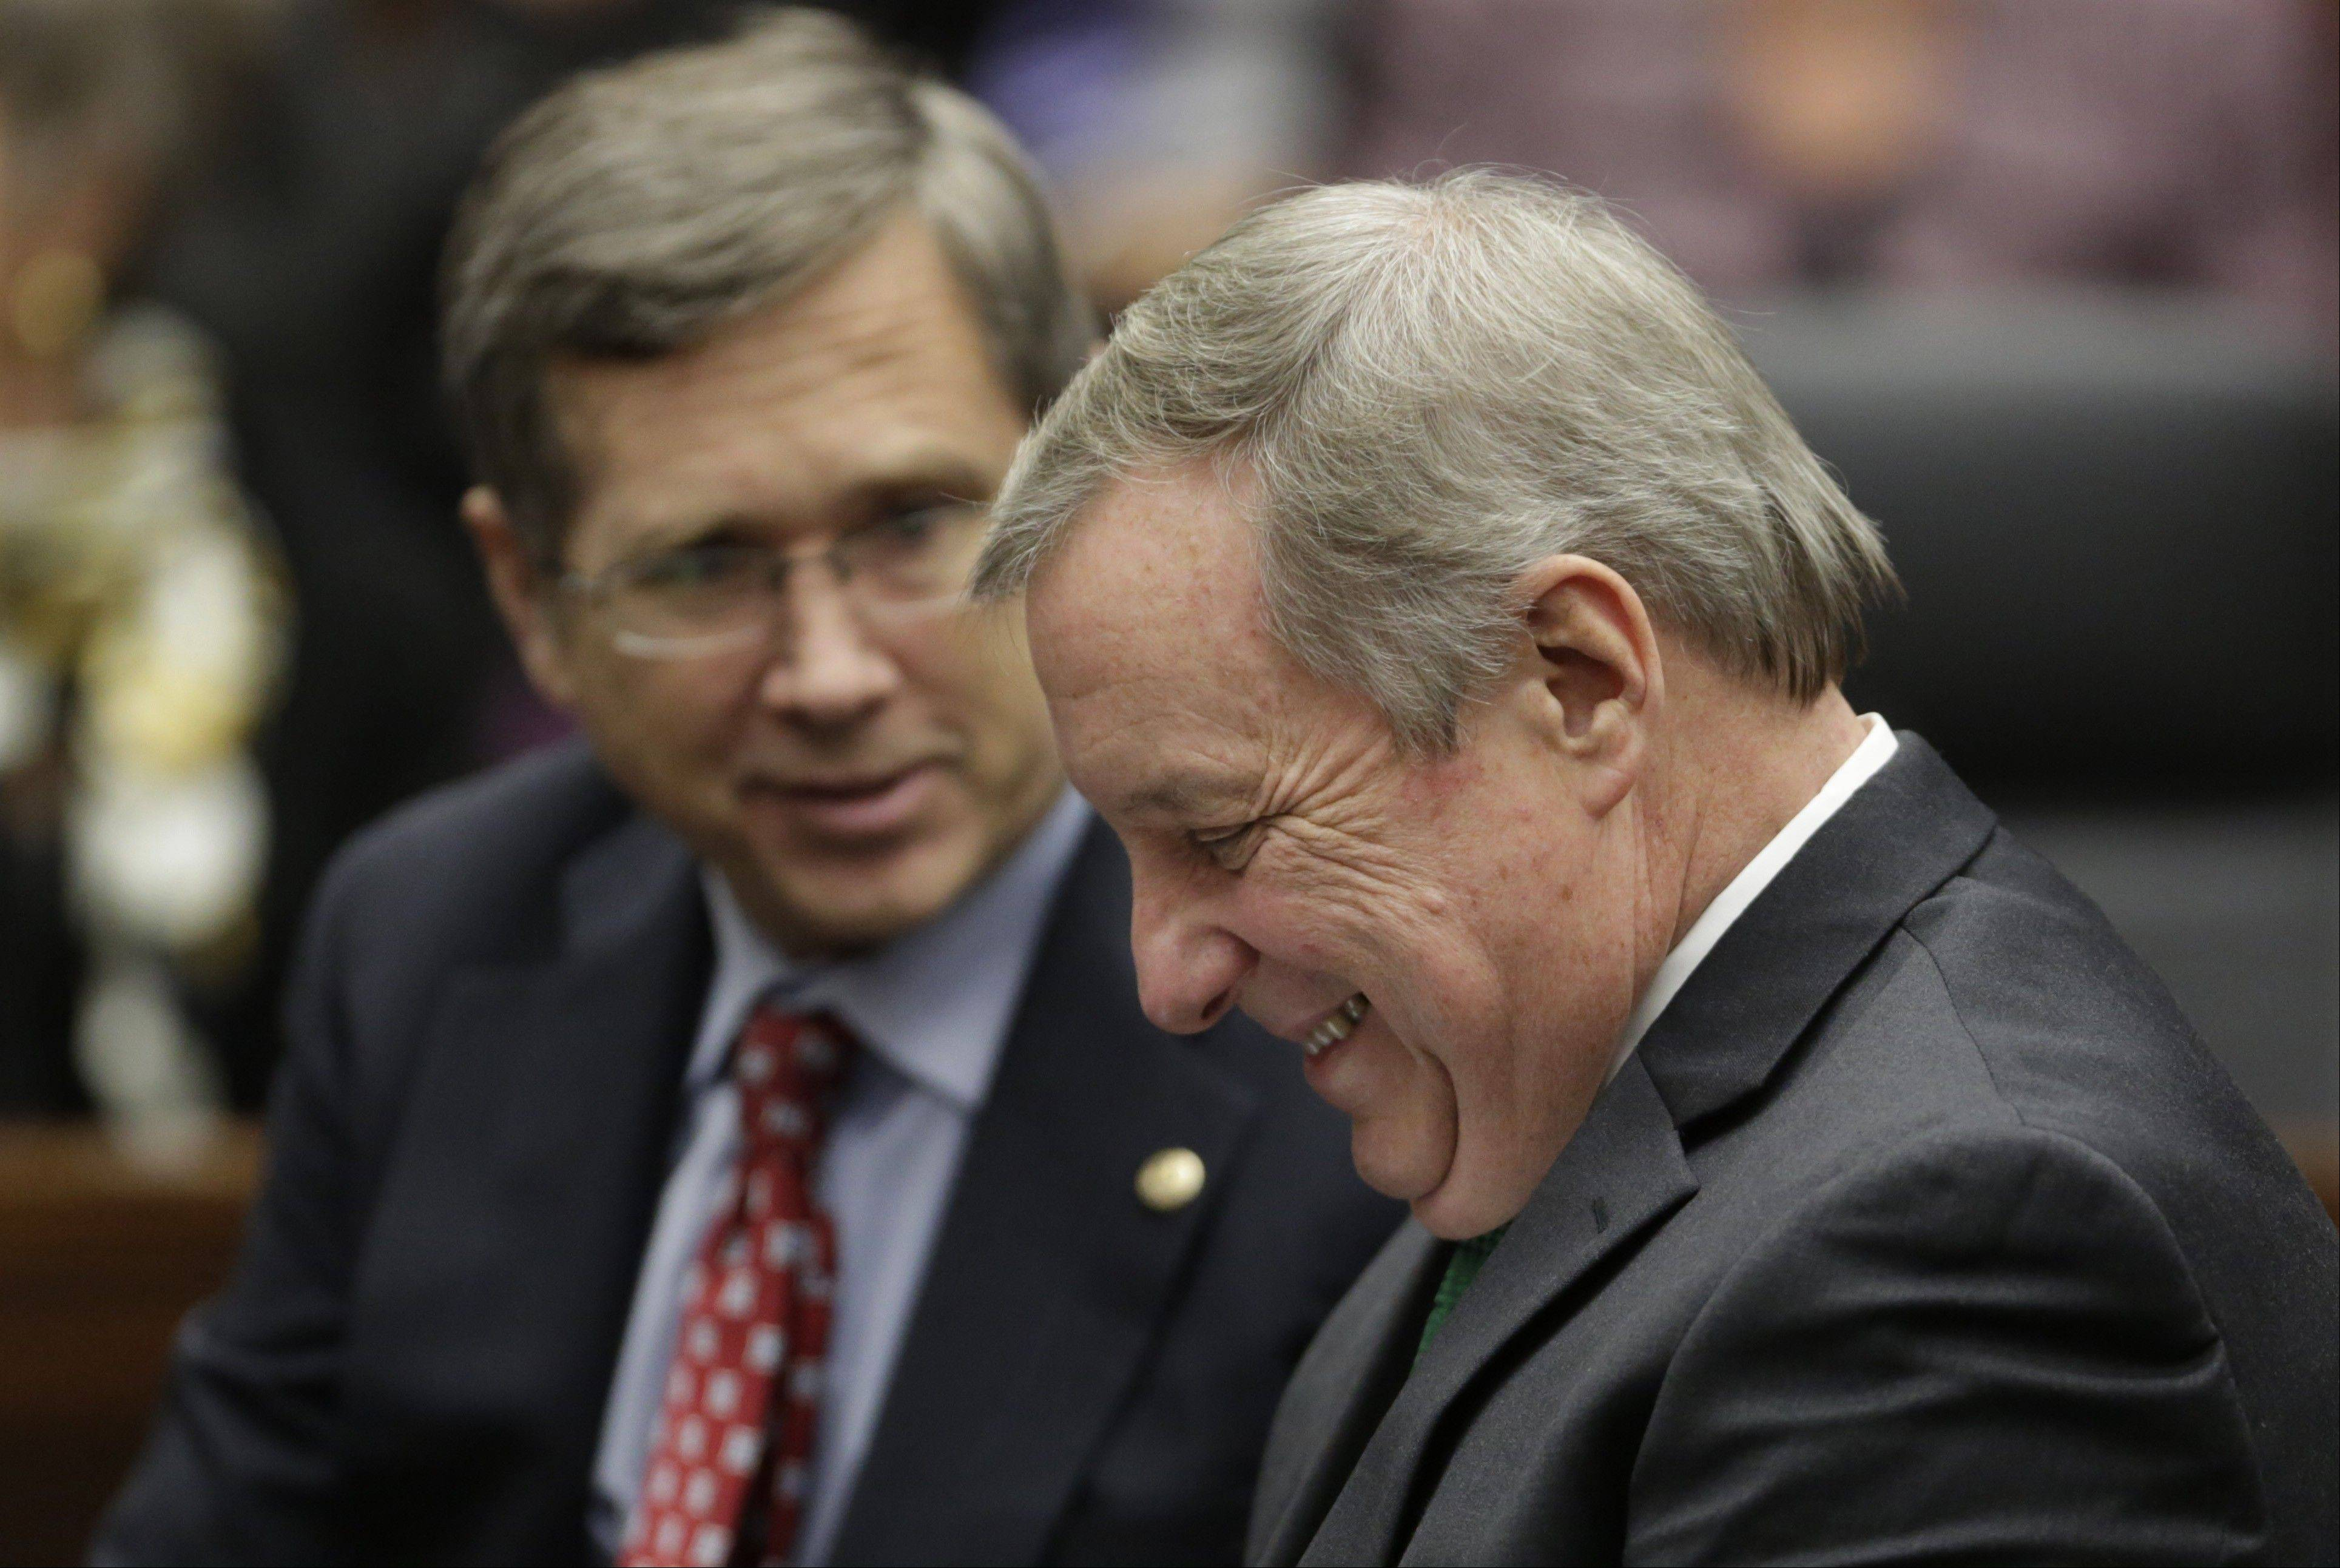 "In this Nov. 25, 2013 photo, U.S. Sens. Dick Durbin, an Illinois Democrat, left, and Mark Kirk, an Illinois Republican, laughing together before Zachary T. Fardon, takes a ceremonial oath as United States attorney for the Northern District of Illinois in Chicago. On Capitol Hill, where the partisan divide runs so deep it shut down the government, it can be unusual for members of opposing parties to have close relationships. Both men say they've always had an amicable relationship. But their friendship truly solidified after Kirk suffered a stroke last year and they began a series of what the junior senator calls ""heart-to-hearts"" about how they could do their jobs better by working together."